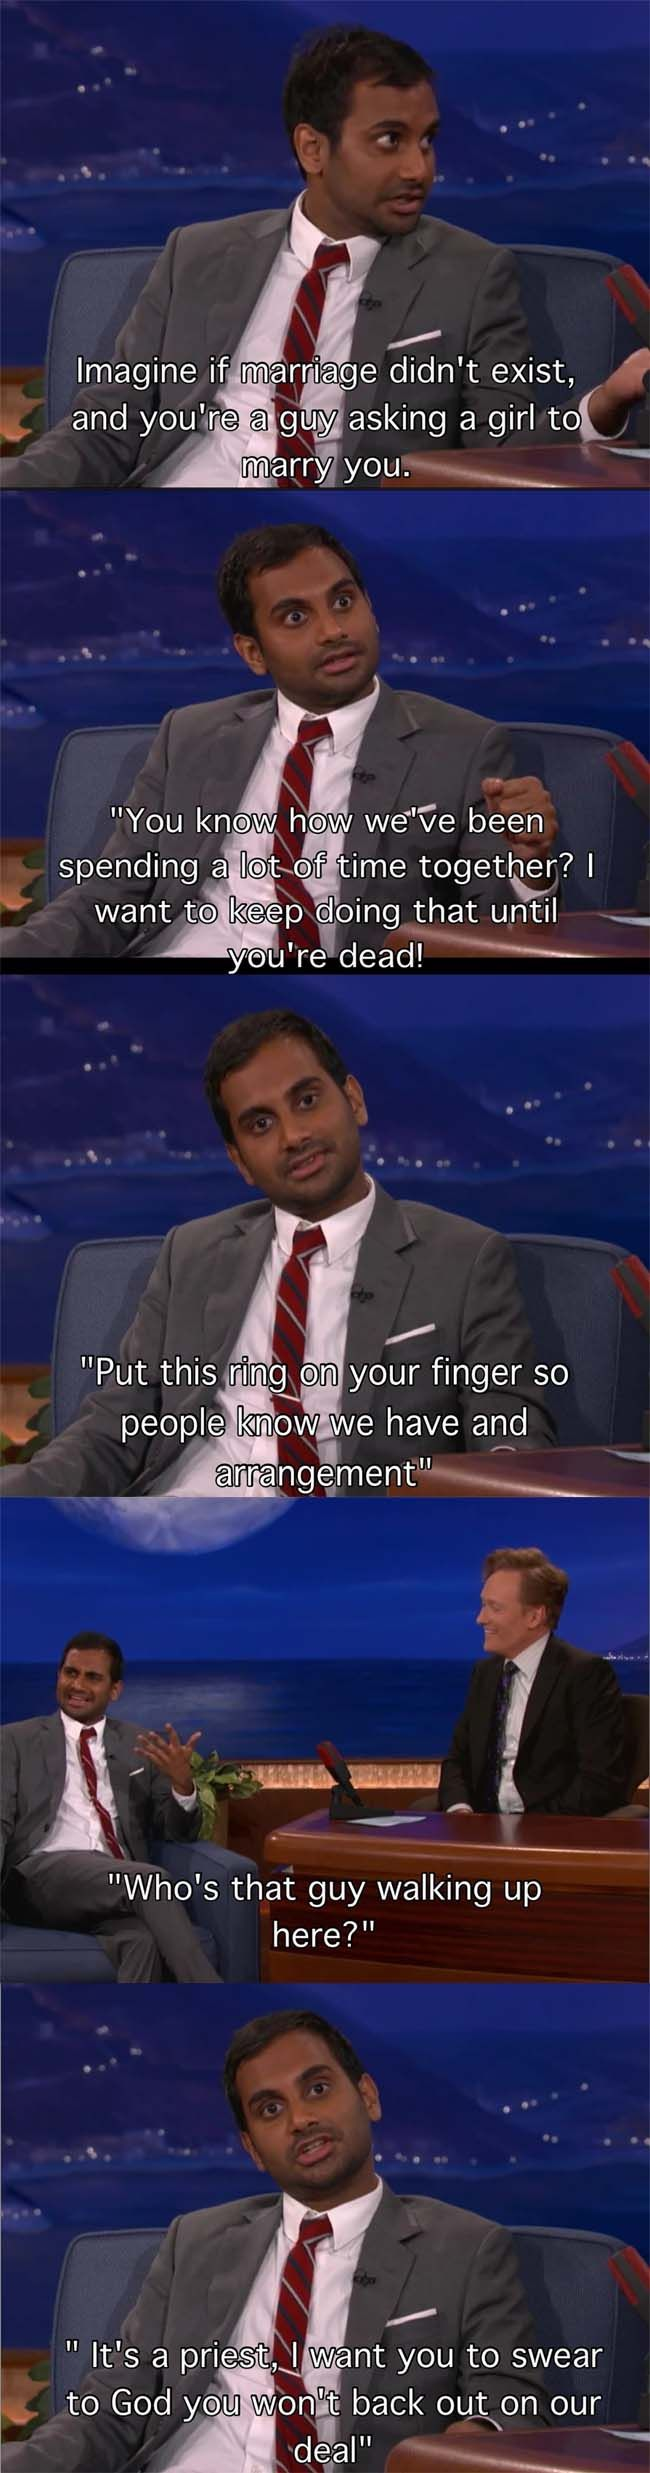 Aziz Ansari #marriage #conan @Megan Maxwell Ridge @Lisa Phillips-Barton Alderfer